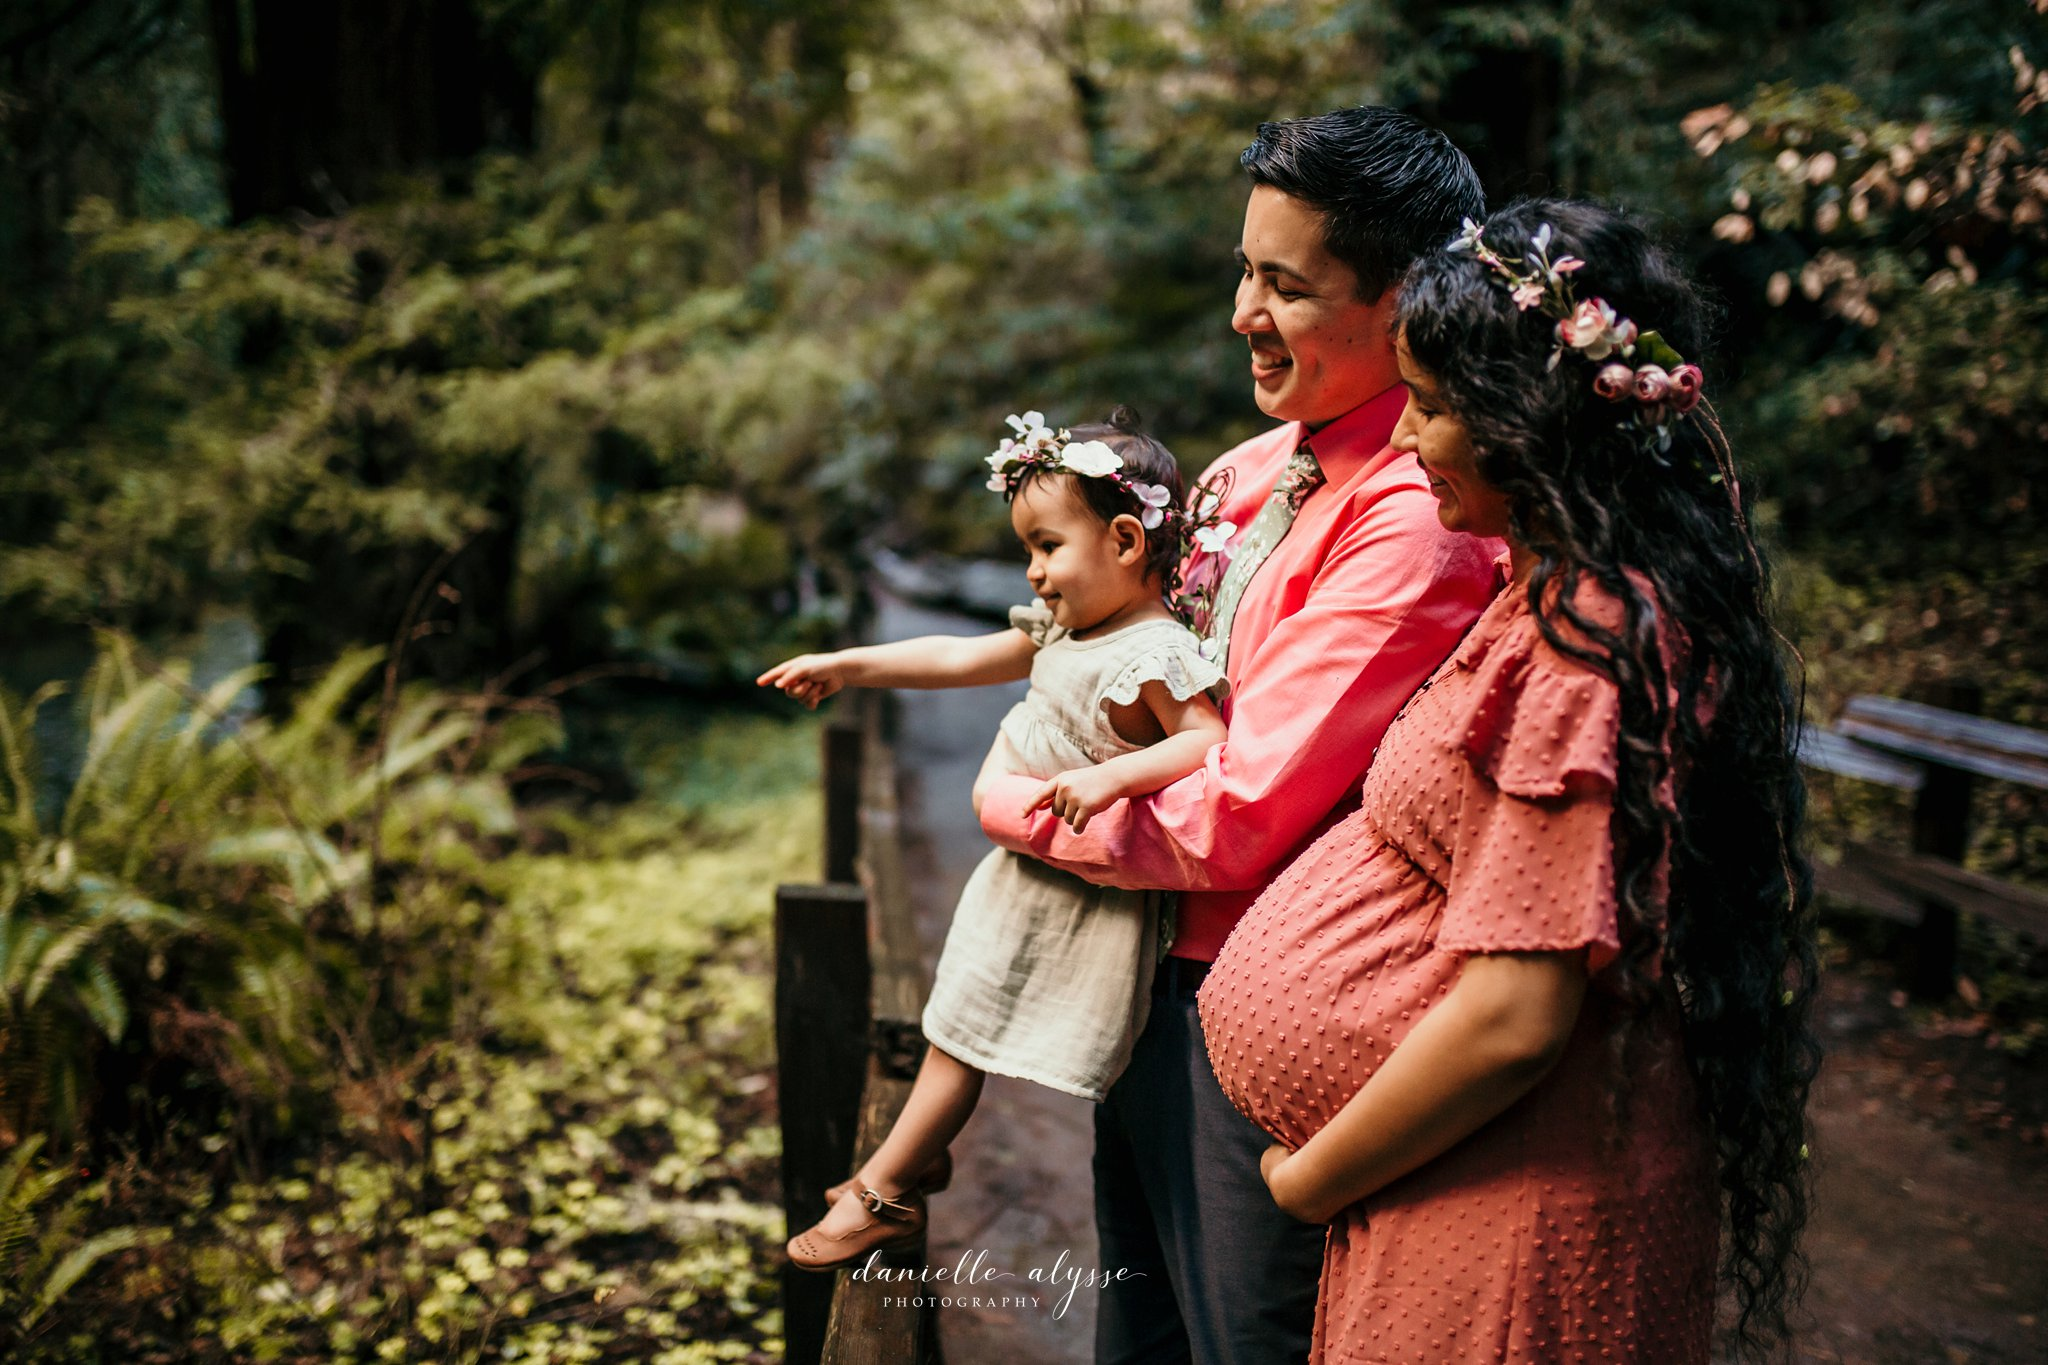 190216_maternity_india_family_muir_woods_bay_danielle_alysse_photography_9_WEB.jpg